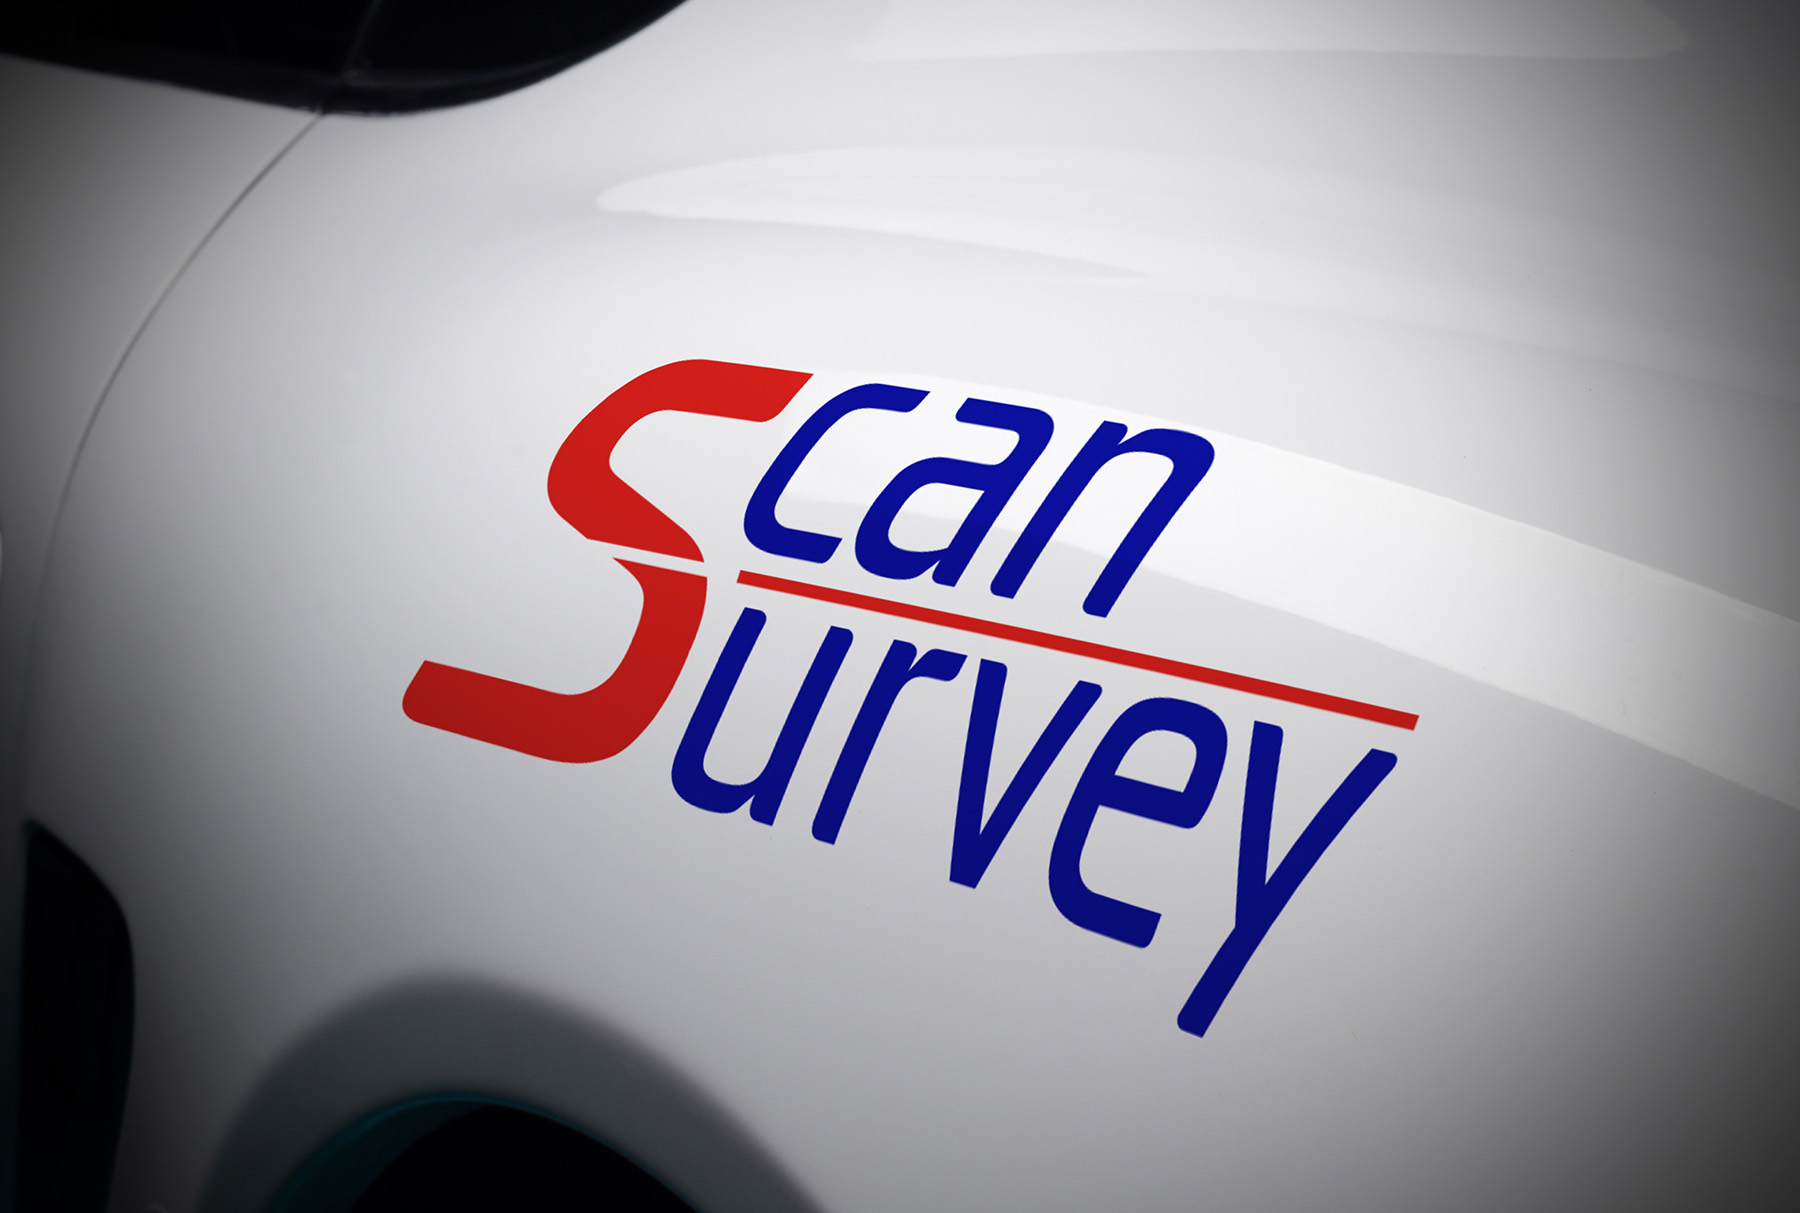 ScanSurvey-logo